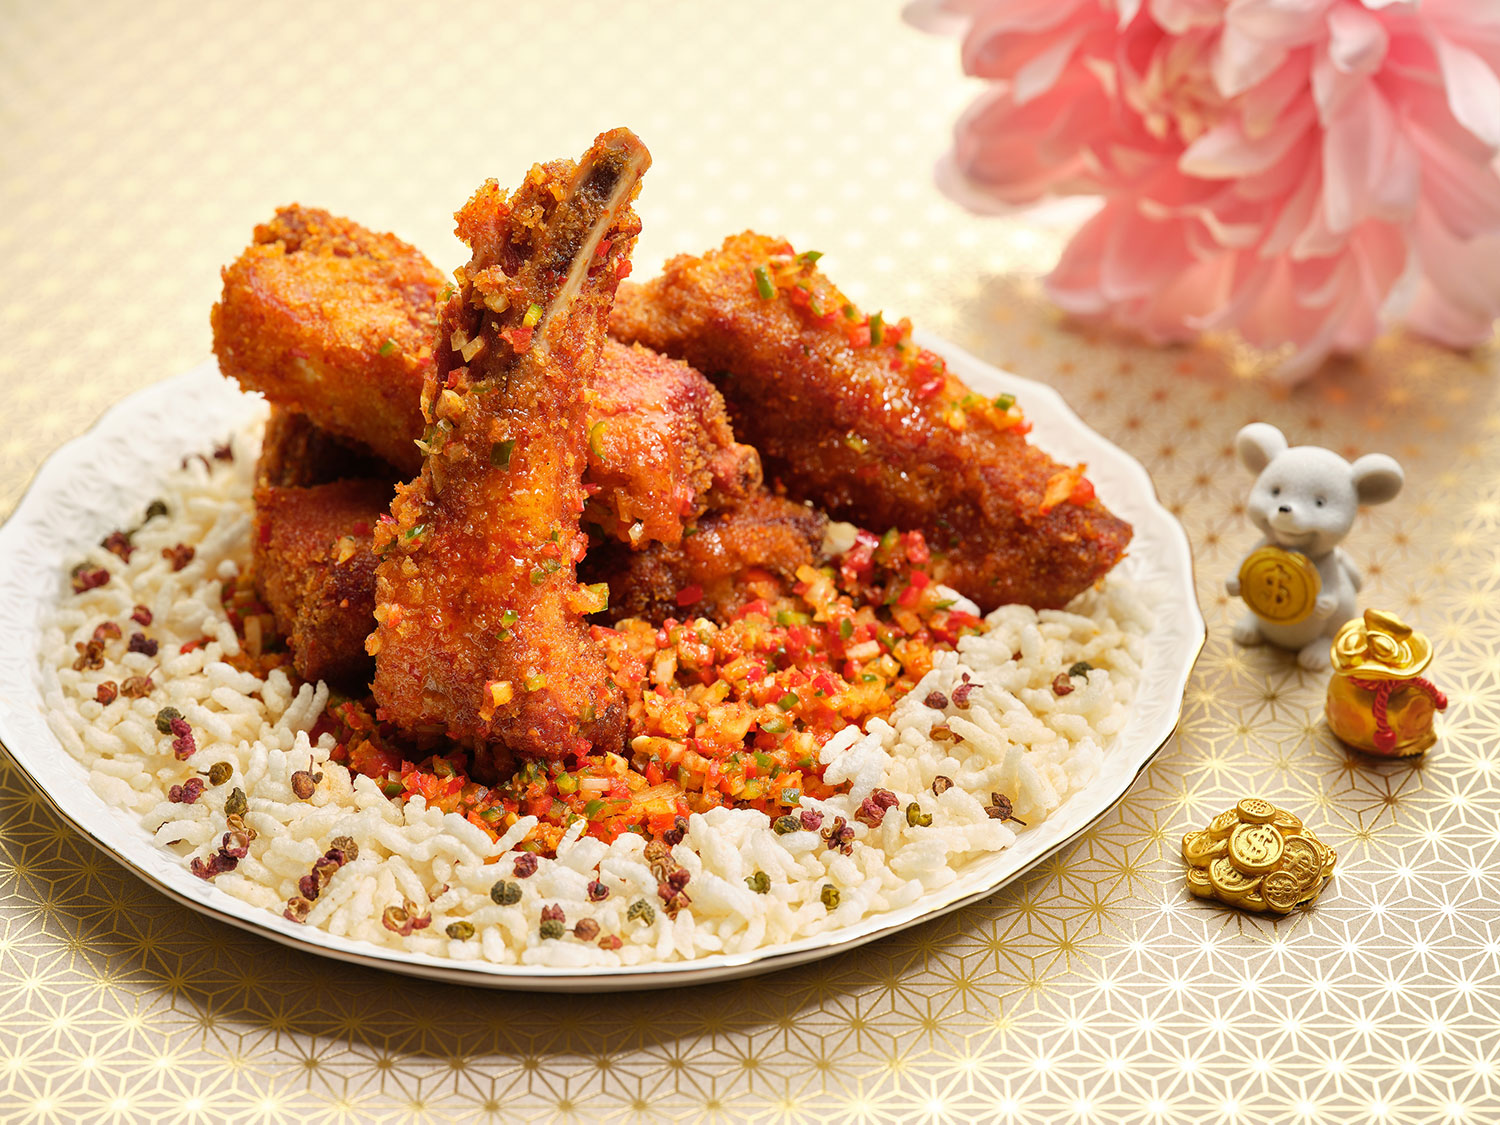 Si-Chuan-Dou-Hua-at-PARKROYAL-on-Beach-Road---Deep-fried-Spare-Ribs-in-Sichuan-Spices